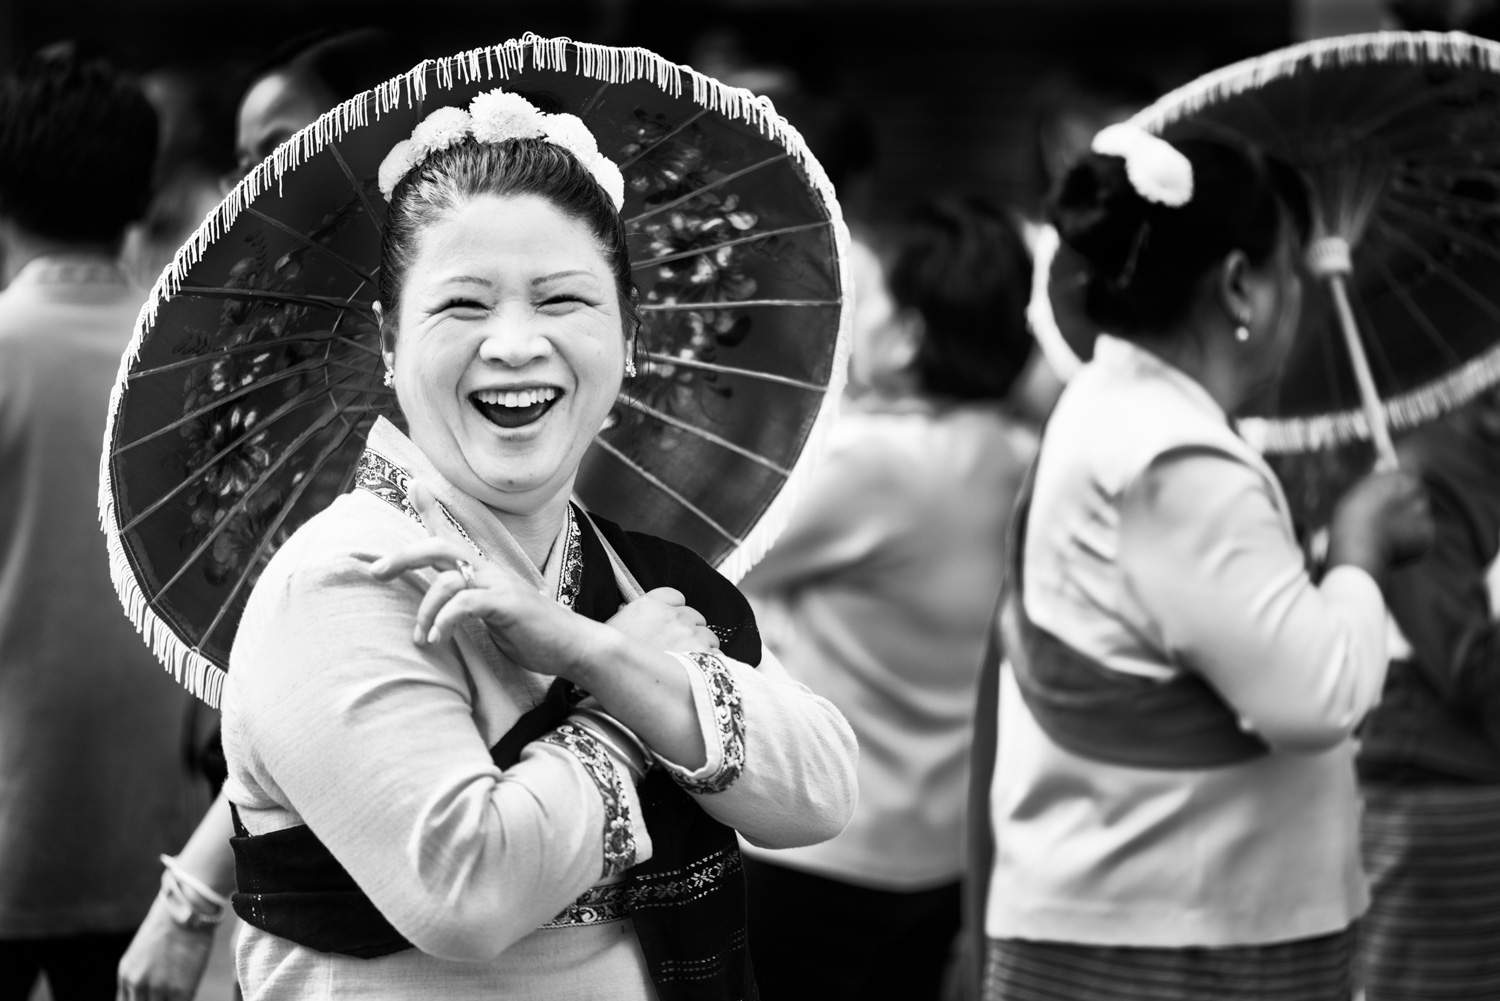 Laughing Lady How Using the Zone System Can Improve Your Photography